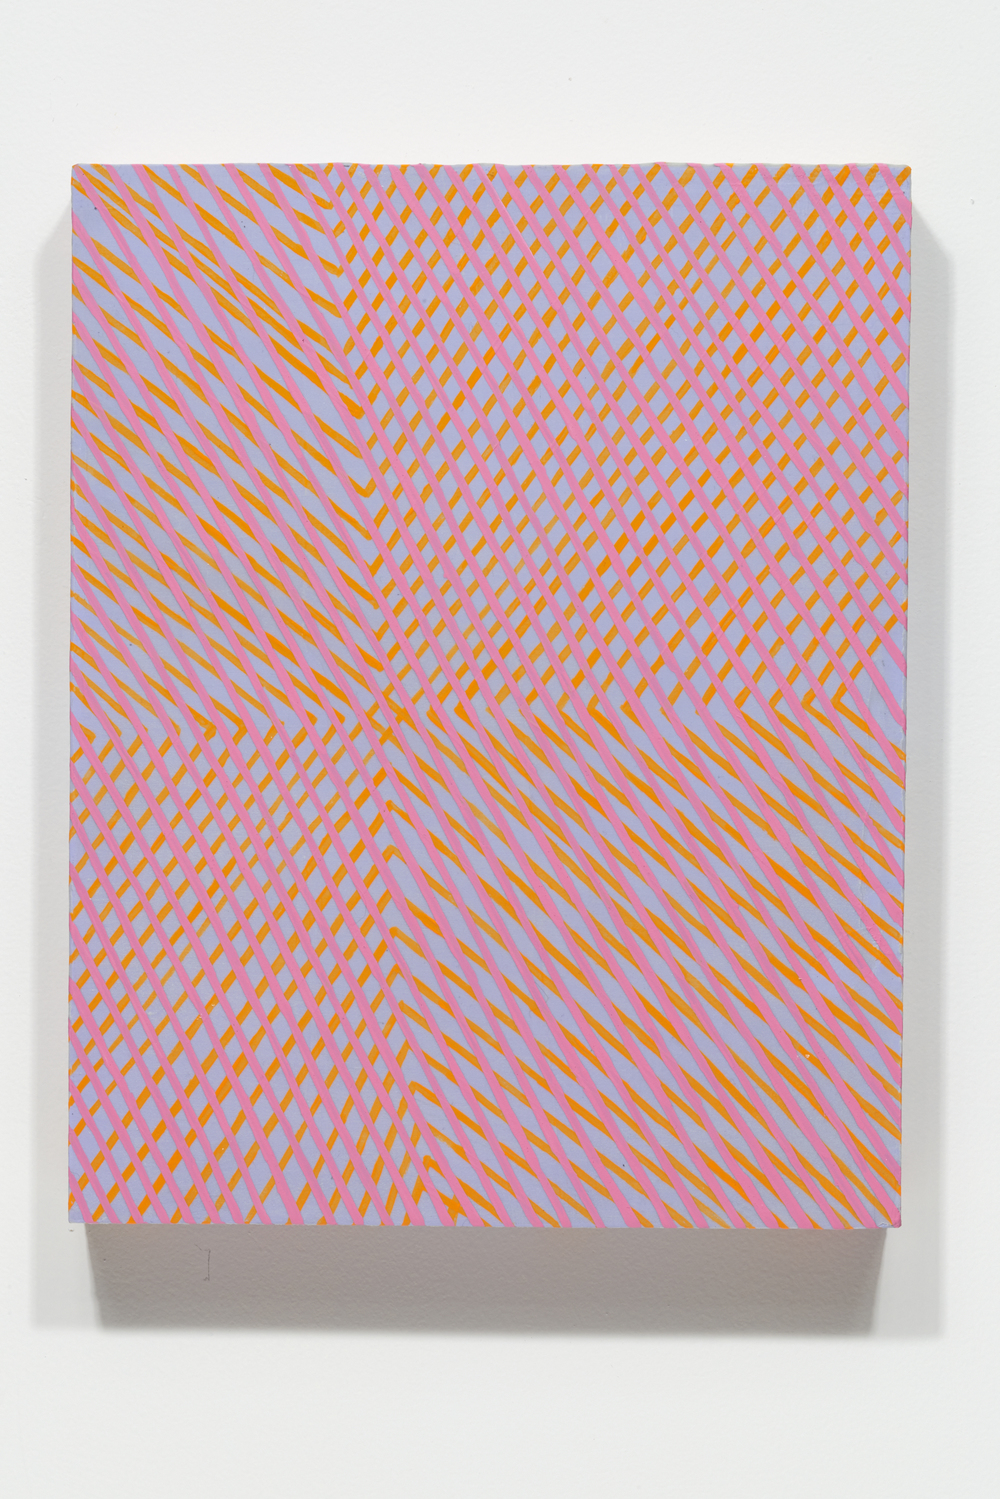 Mel Prest, The East is Blue, 2014, acrylic and fluorescent acrylic on panel, 14 x 11 x 2 inches